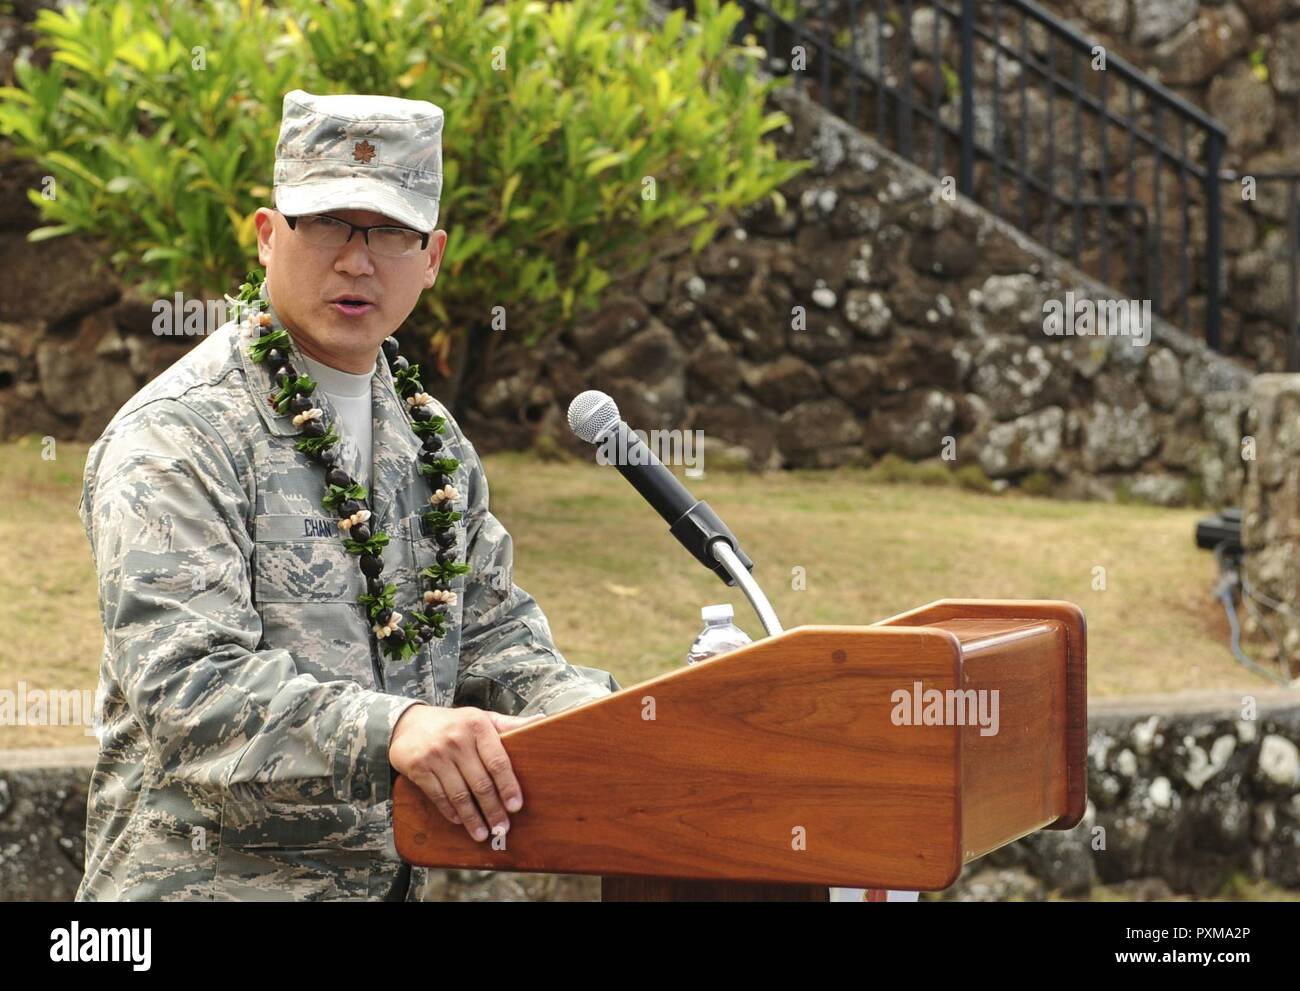 Maj. Edmond Chan, Detachment 3 commander, speaks to his unit during the Detachment 3 Change of Command Ceremony, Kaena Point, Hawaii, June 9, 2017.  Detachment 3 is a component of the 21st Space Operations Squadron, 50th Network Operations Group, 50th Space Wing, and is located on the western tip of Oahu.  It is the oldest and one of seven worldwide remote tracking stations in the Air Force Satellite Control Network. - Stock Image